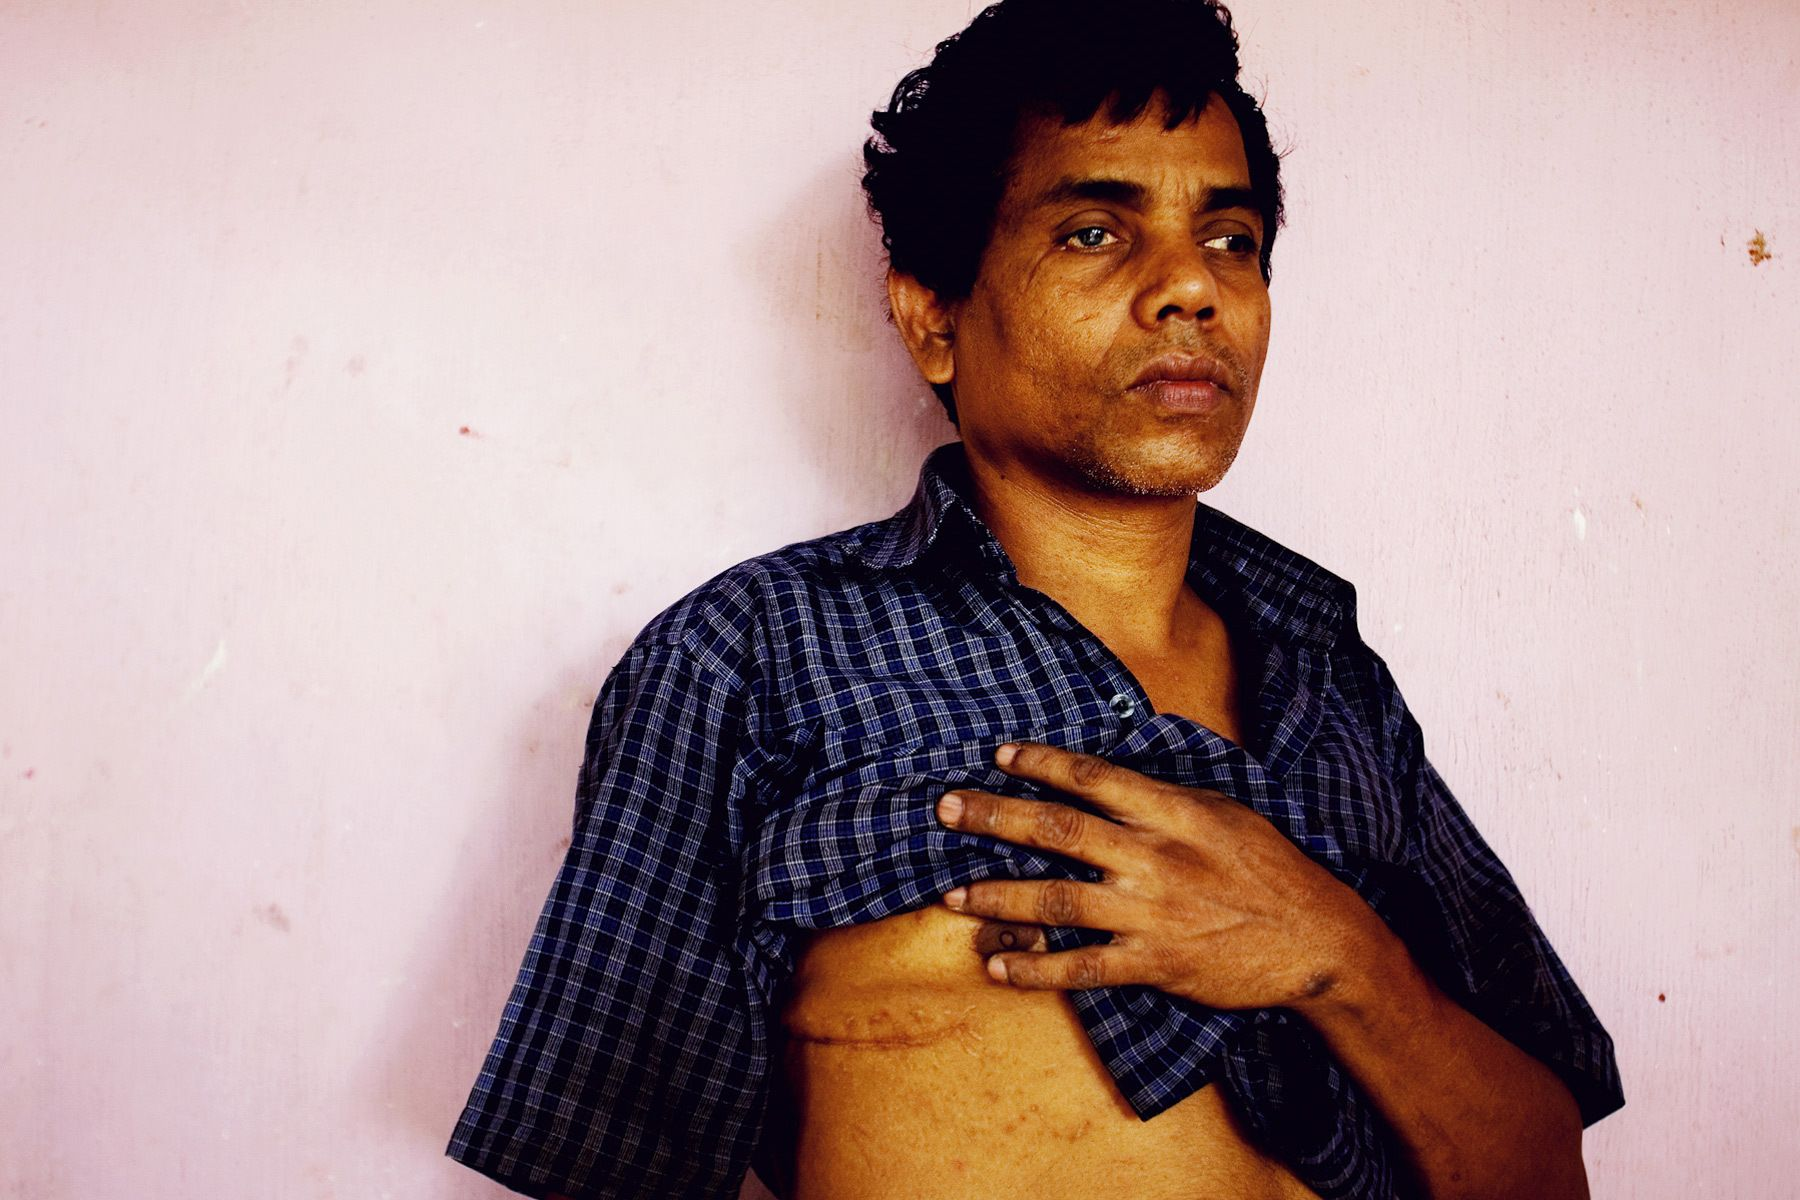 """I became blind in 1998. I was a policeman in my village. The LTTE attacked us around 2 am. They tried to take my rifle but I held it. Then they stabbed my face and chest with a knife. I survived, but since then I became blind."""